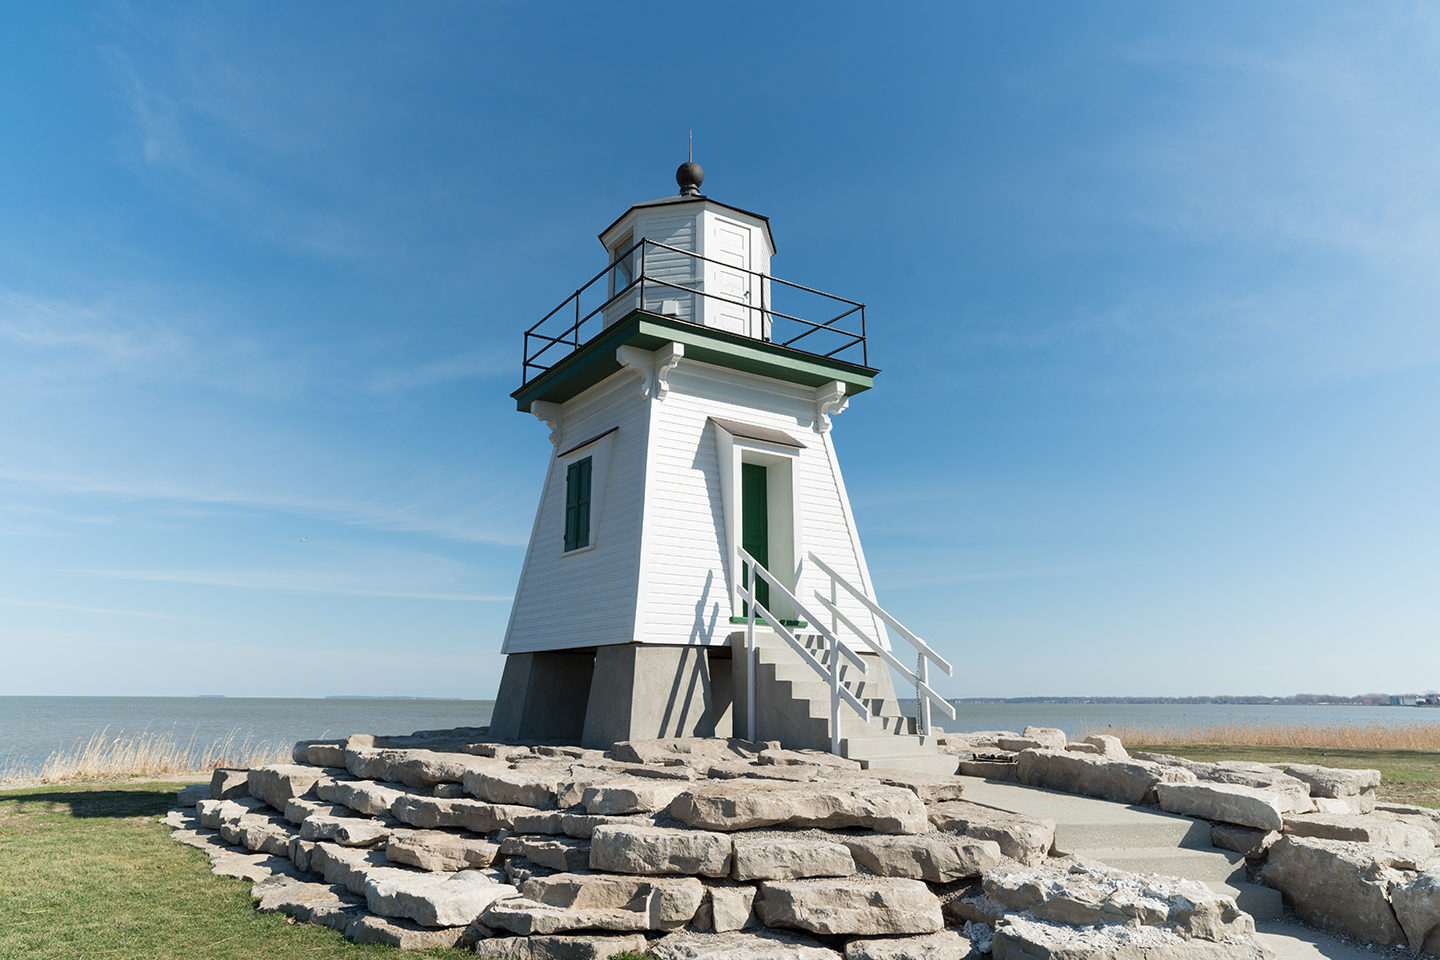 A white lighthouse in Port Clinton, one of the best summer fishing destinations on the Great Lakes, with the blue sky behind and green grass beneath it